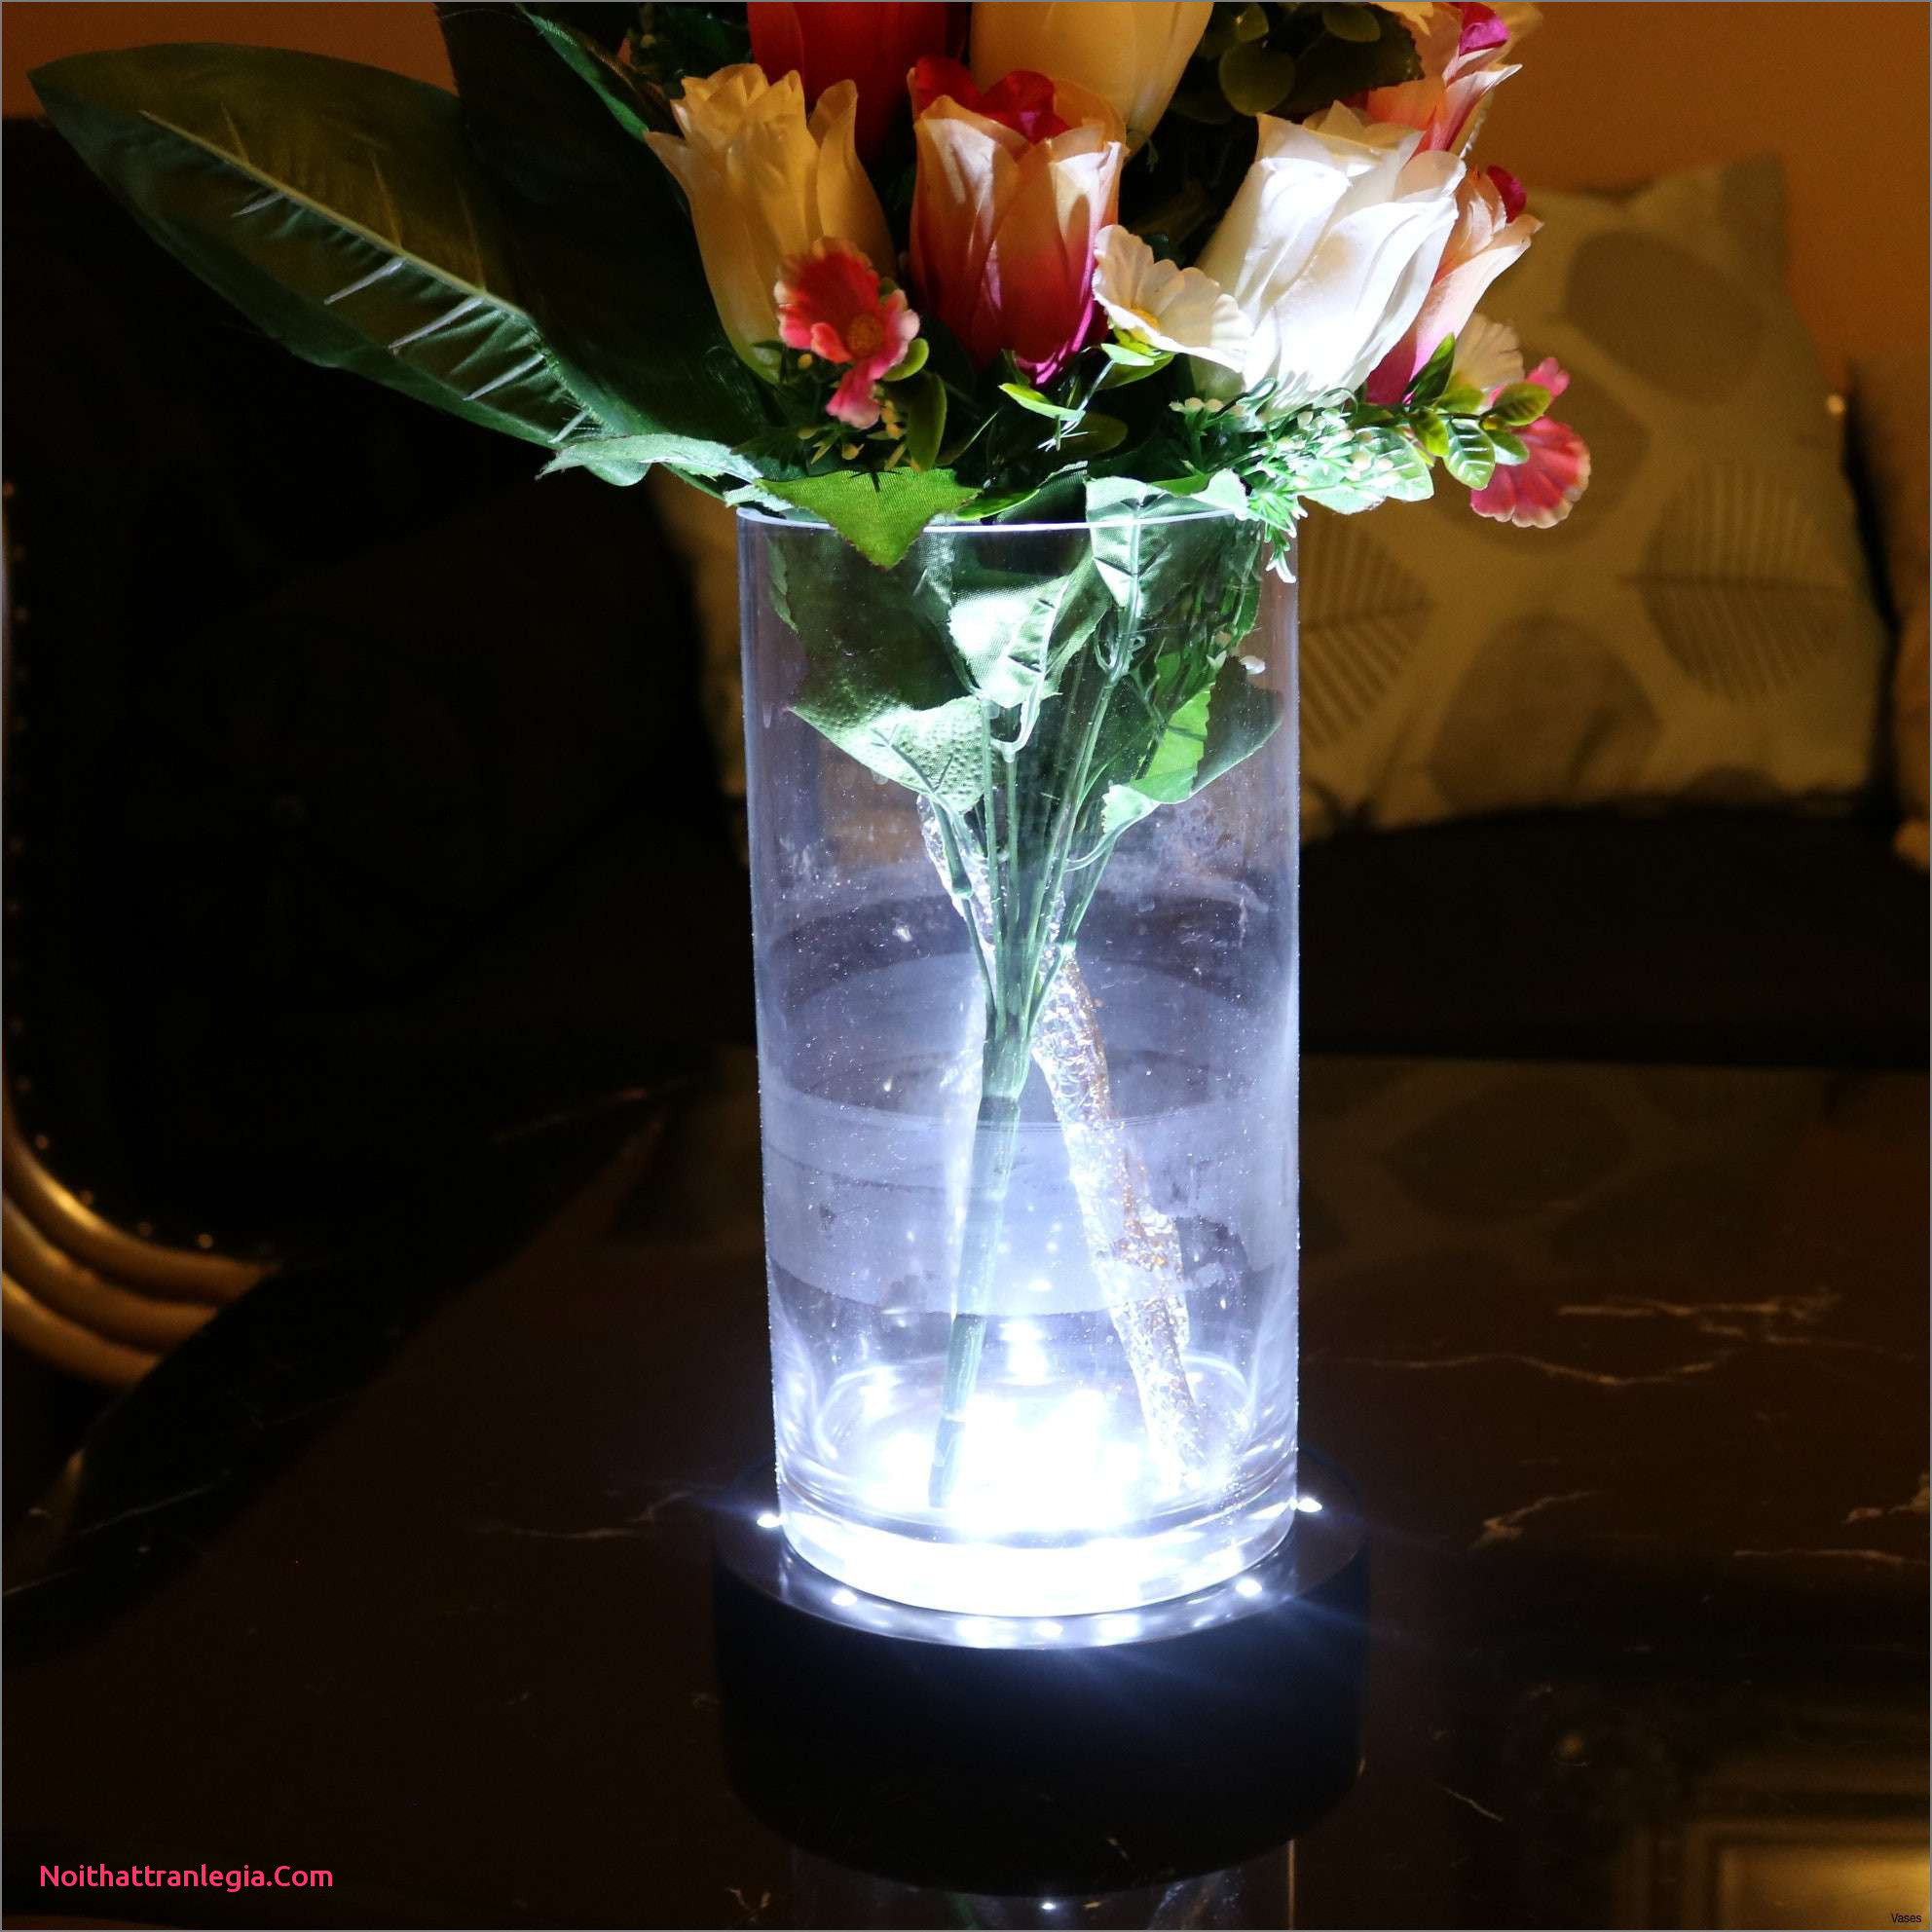 silver urn vase of 20 cut glass antique vase noithattranlegia vases design regarding glass wall vases gallery vases disposable plastic single cheap flower rose vasei 0d design glass